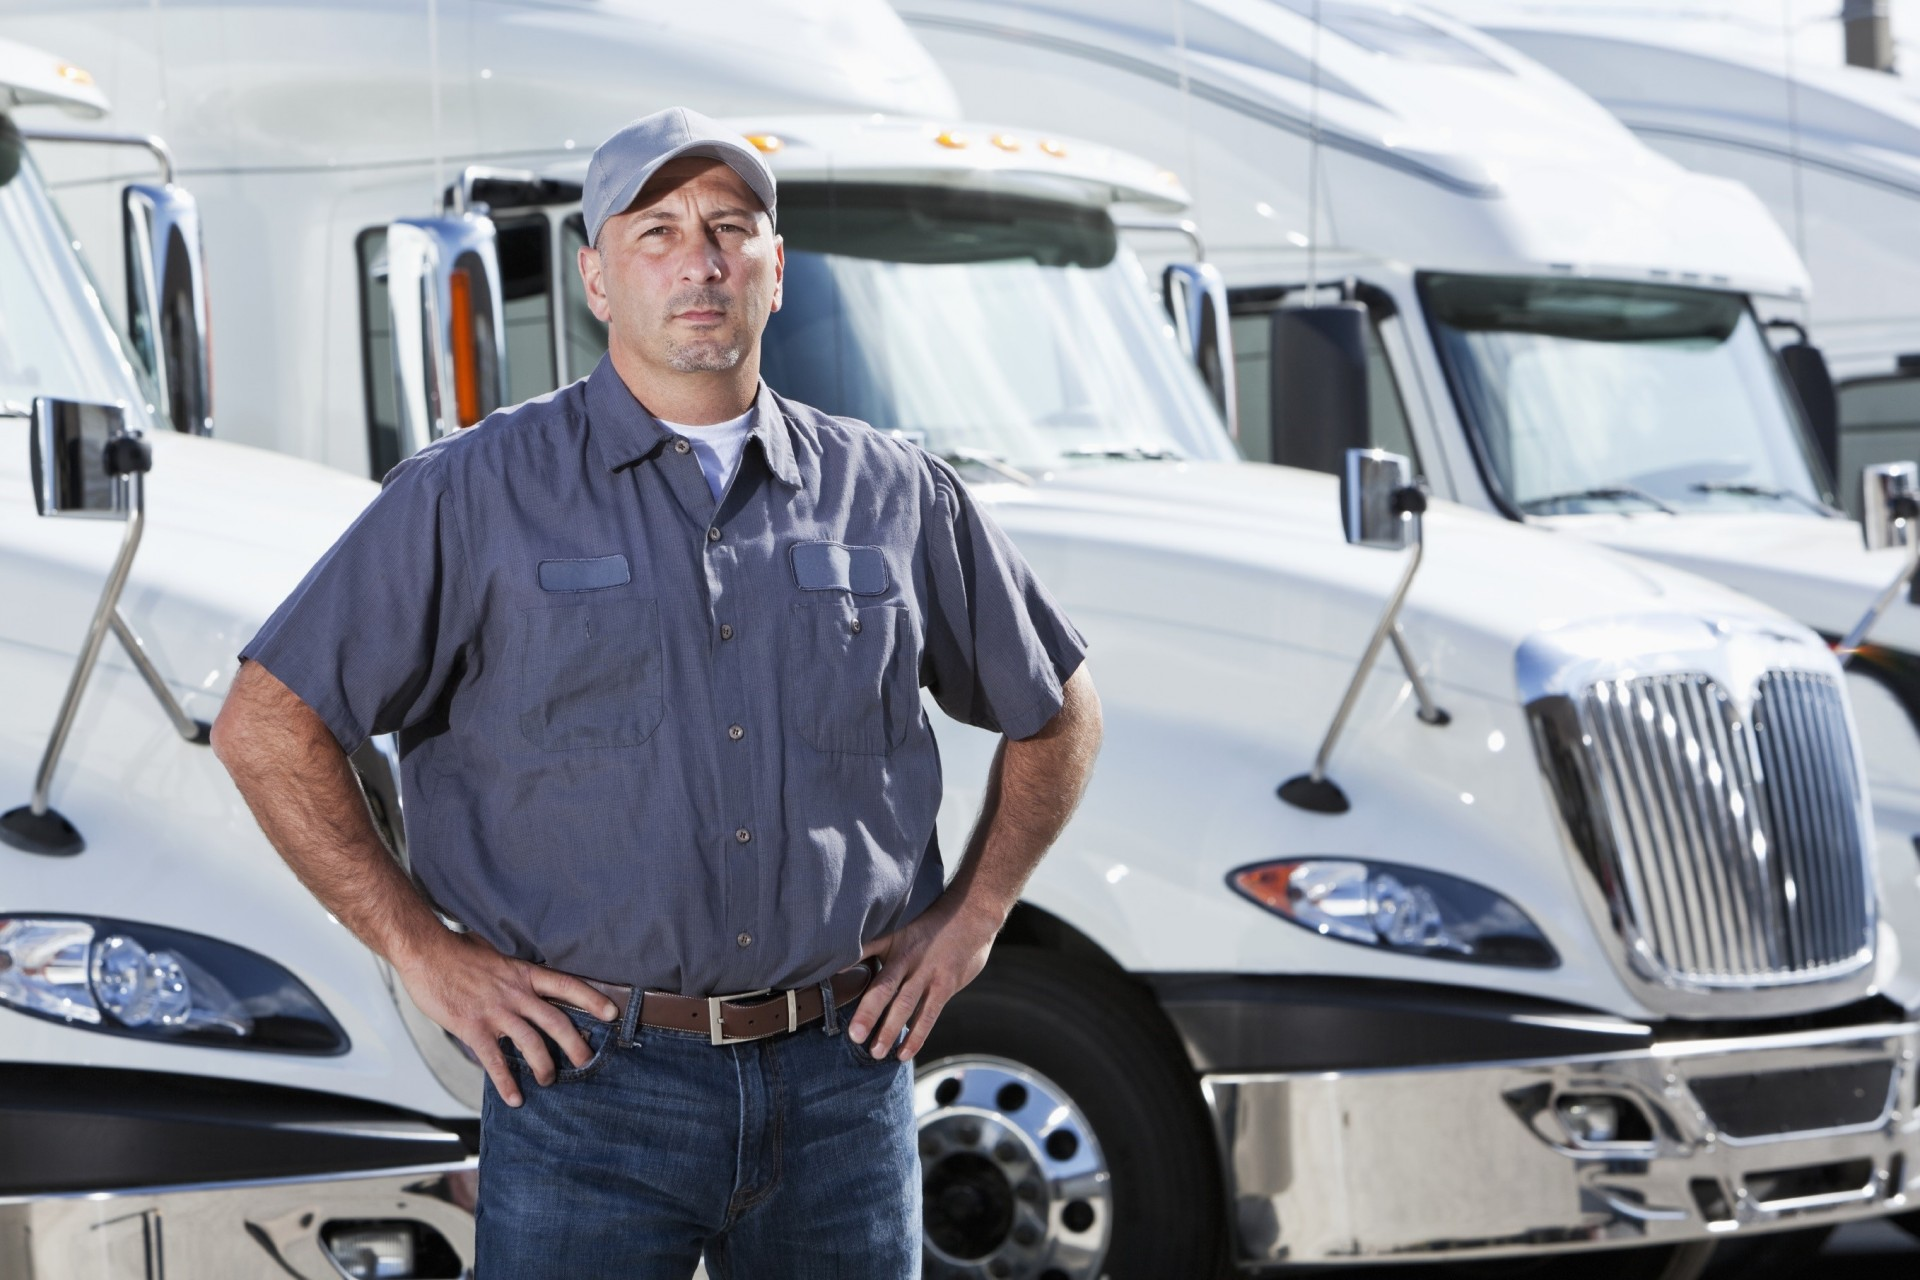 10 Countries With The Highest Truck Driver Salaries In The World